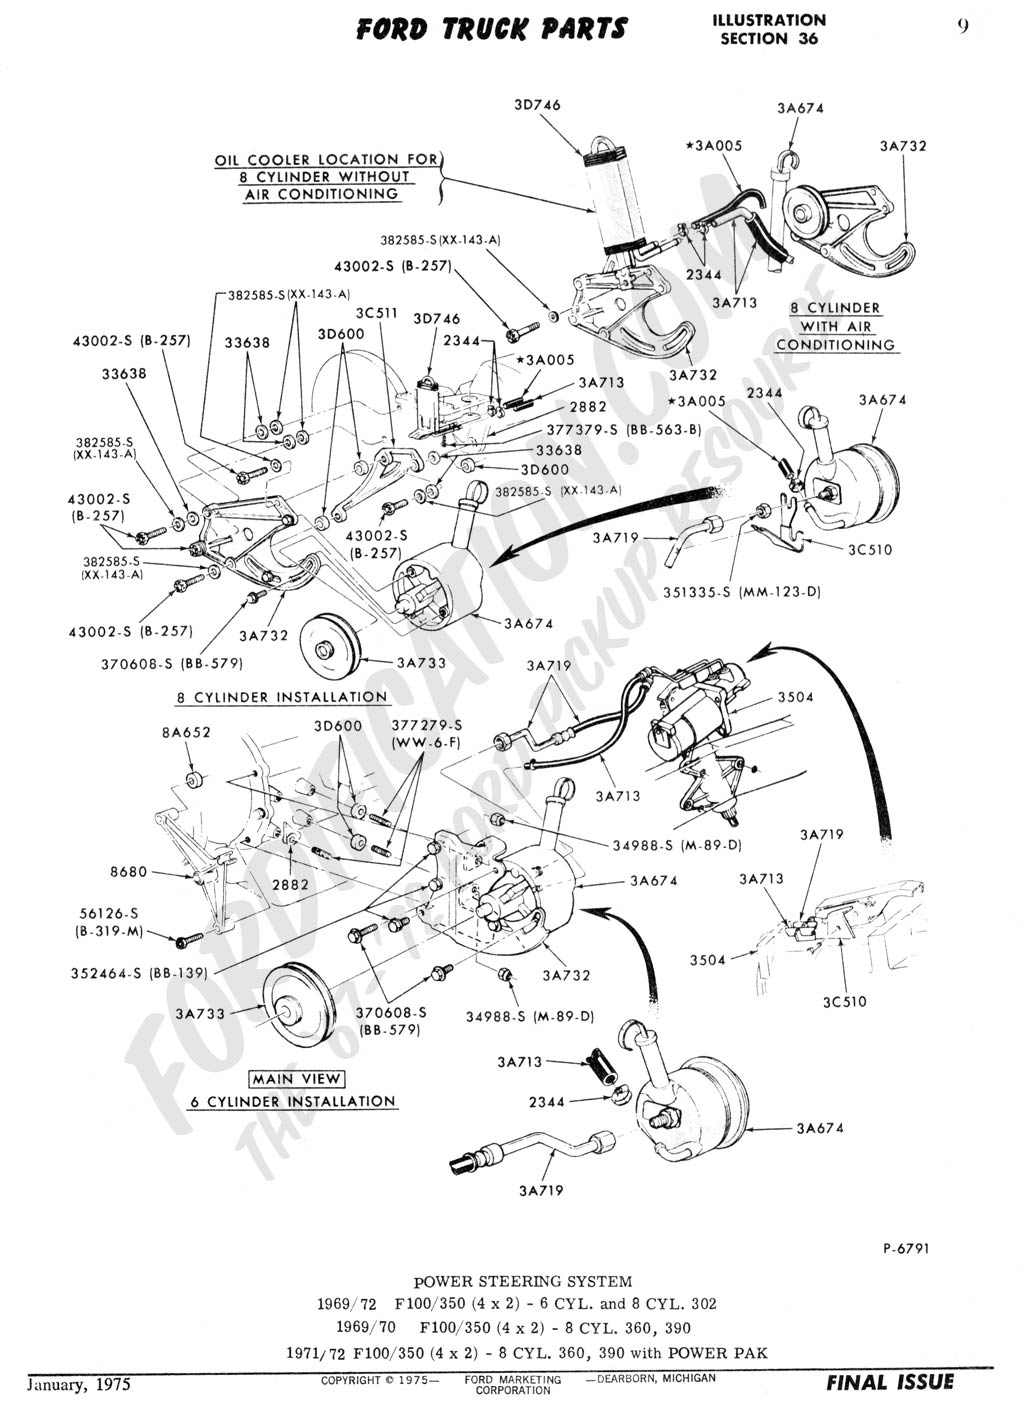 1972 F250 4x4 Steering Diagram Web About Wiring 1970 Ford Highboy Truck Technical Drawings And Schematics Section C Rh Fordification Com 1967 F 250